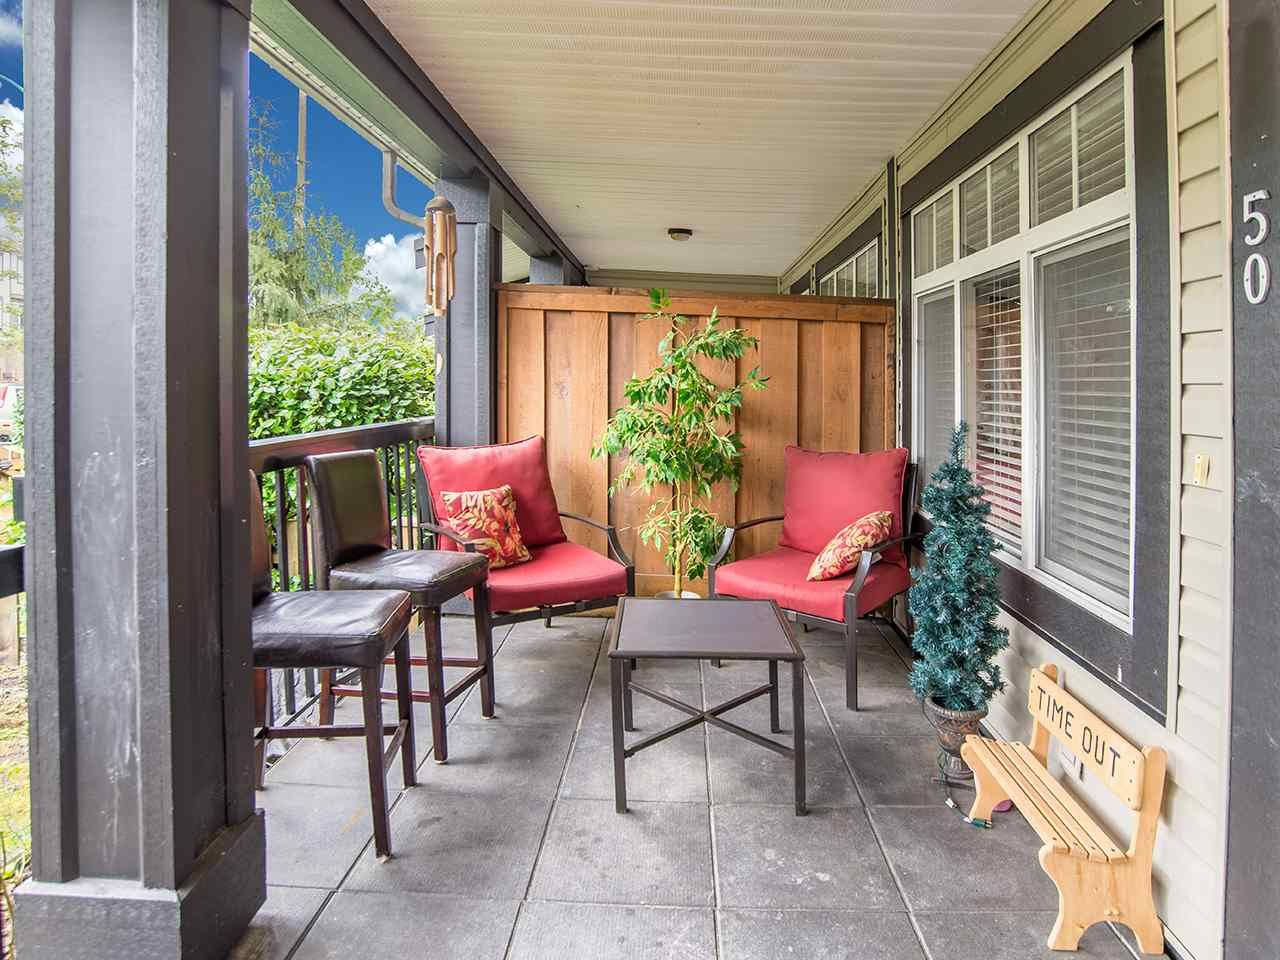 Main Photo: 50 19448 68 AVENUE in Surrey: Clayton Townhouse for sale (Cloverdale)  : MLS®# R2161698